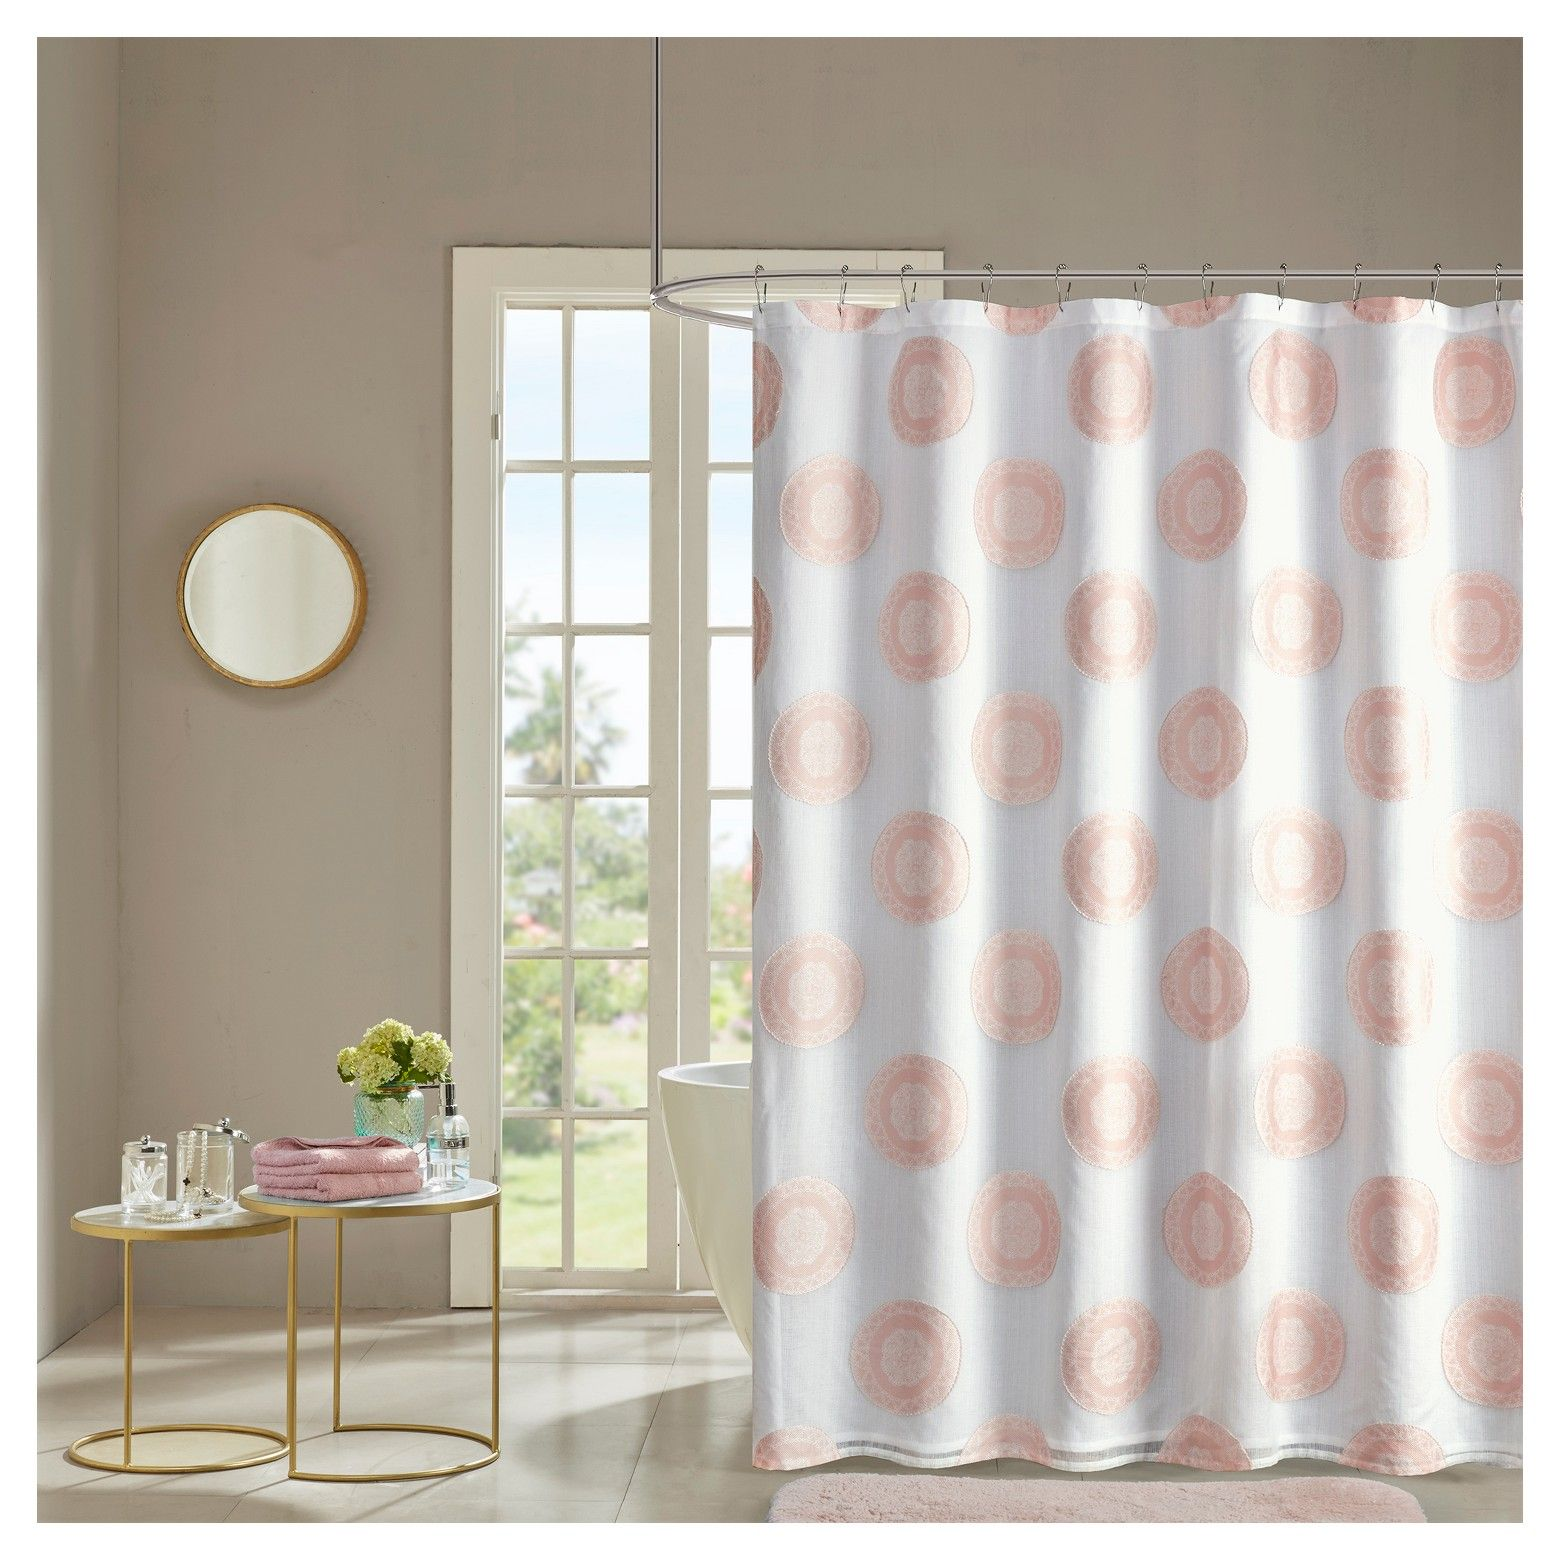 Lighten Up Your Space With The Eureka Shower Curtain Sheer Fabric Features Decorative